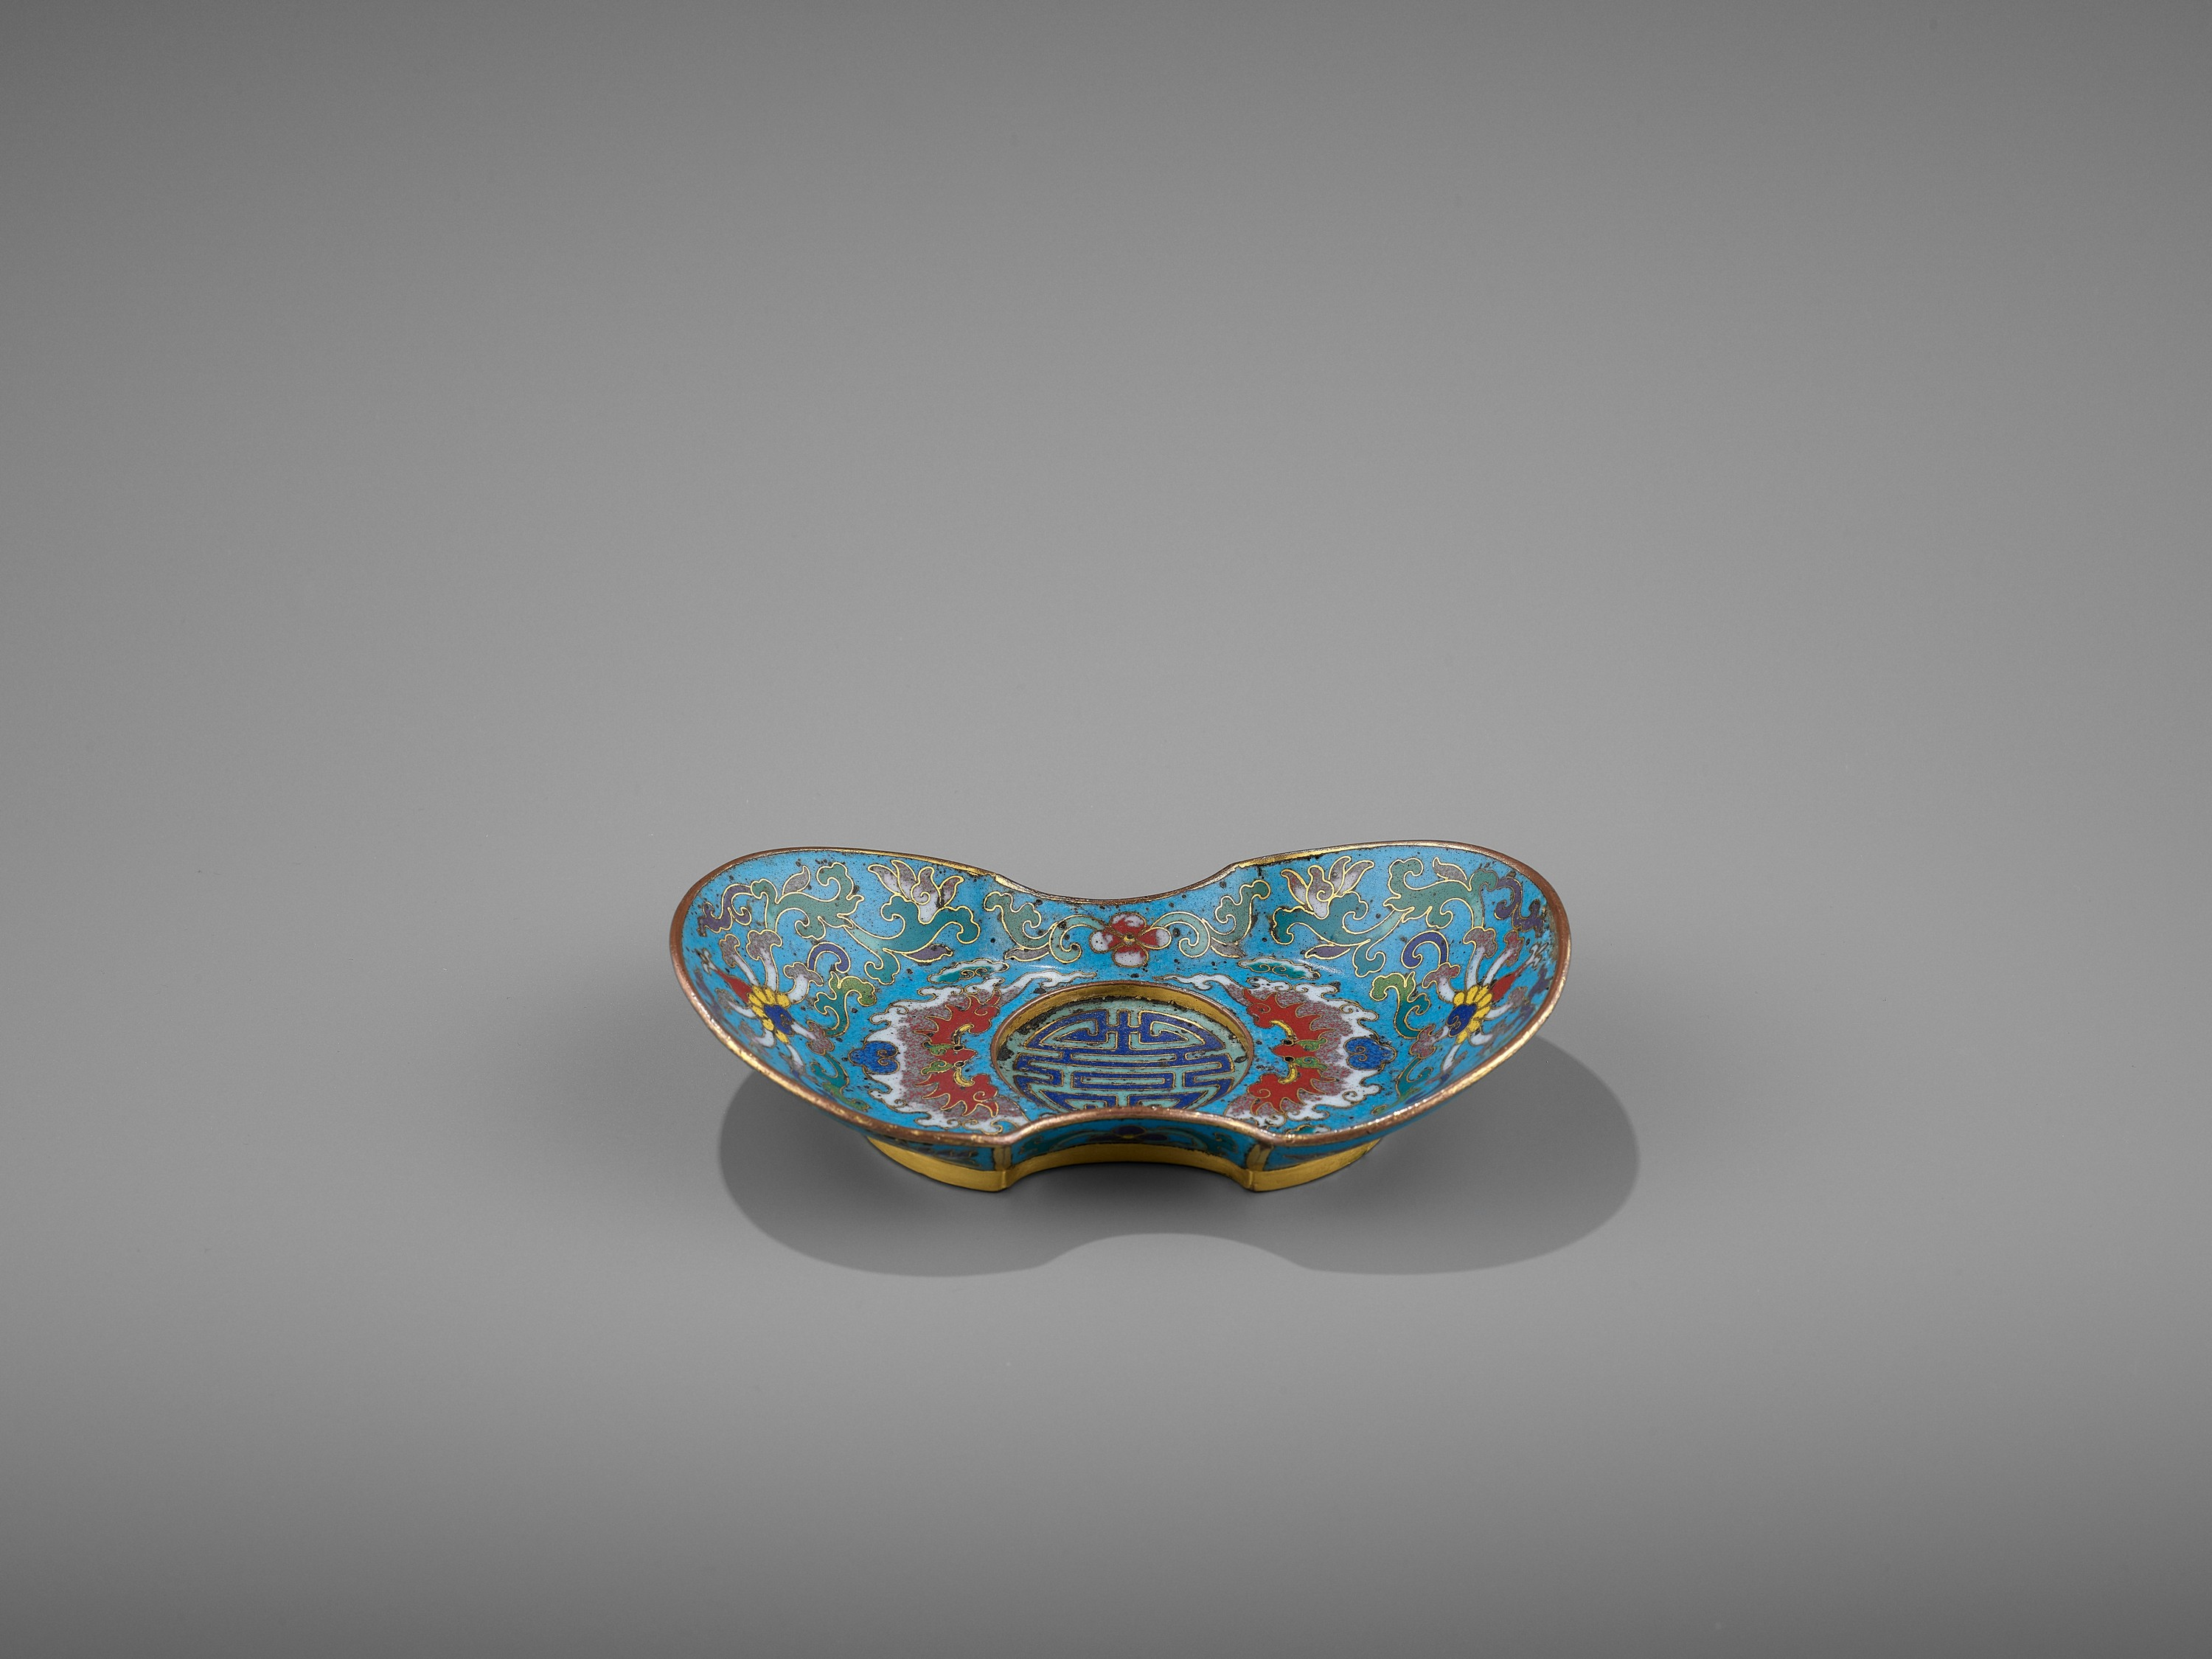 A CLOISONNE AND GILT-BRONZE 'DOUBLE HAPPINESS' CUP STAND, QIANLONG - Image 5 of 10